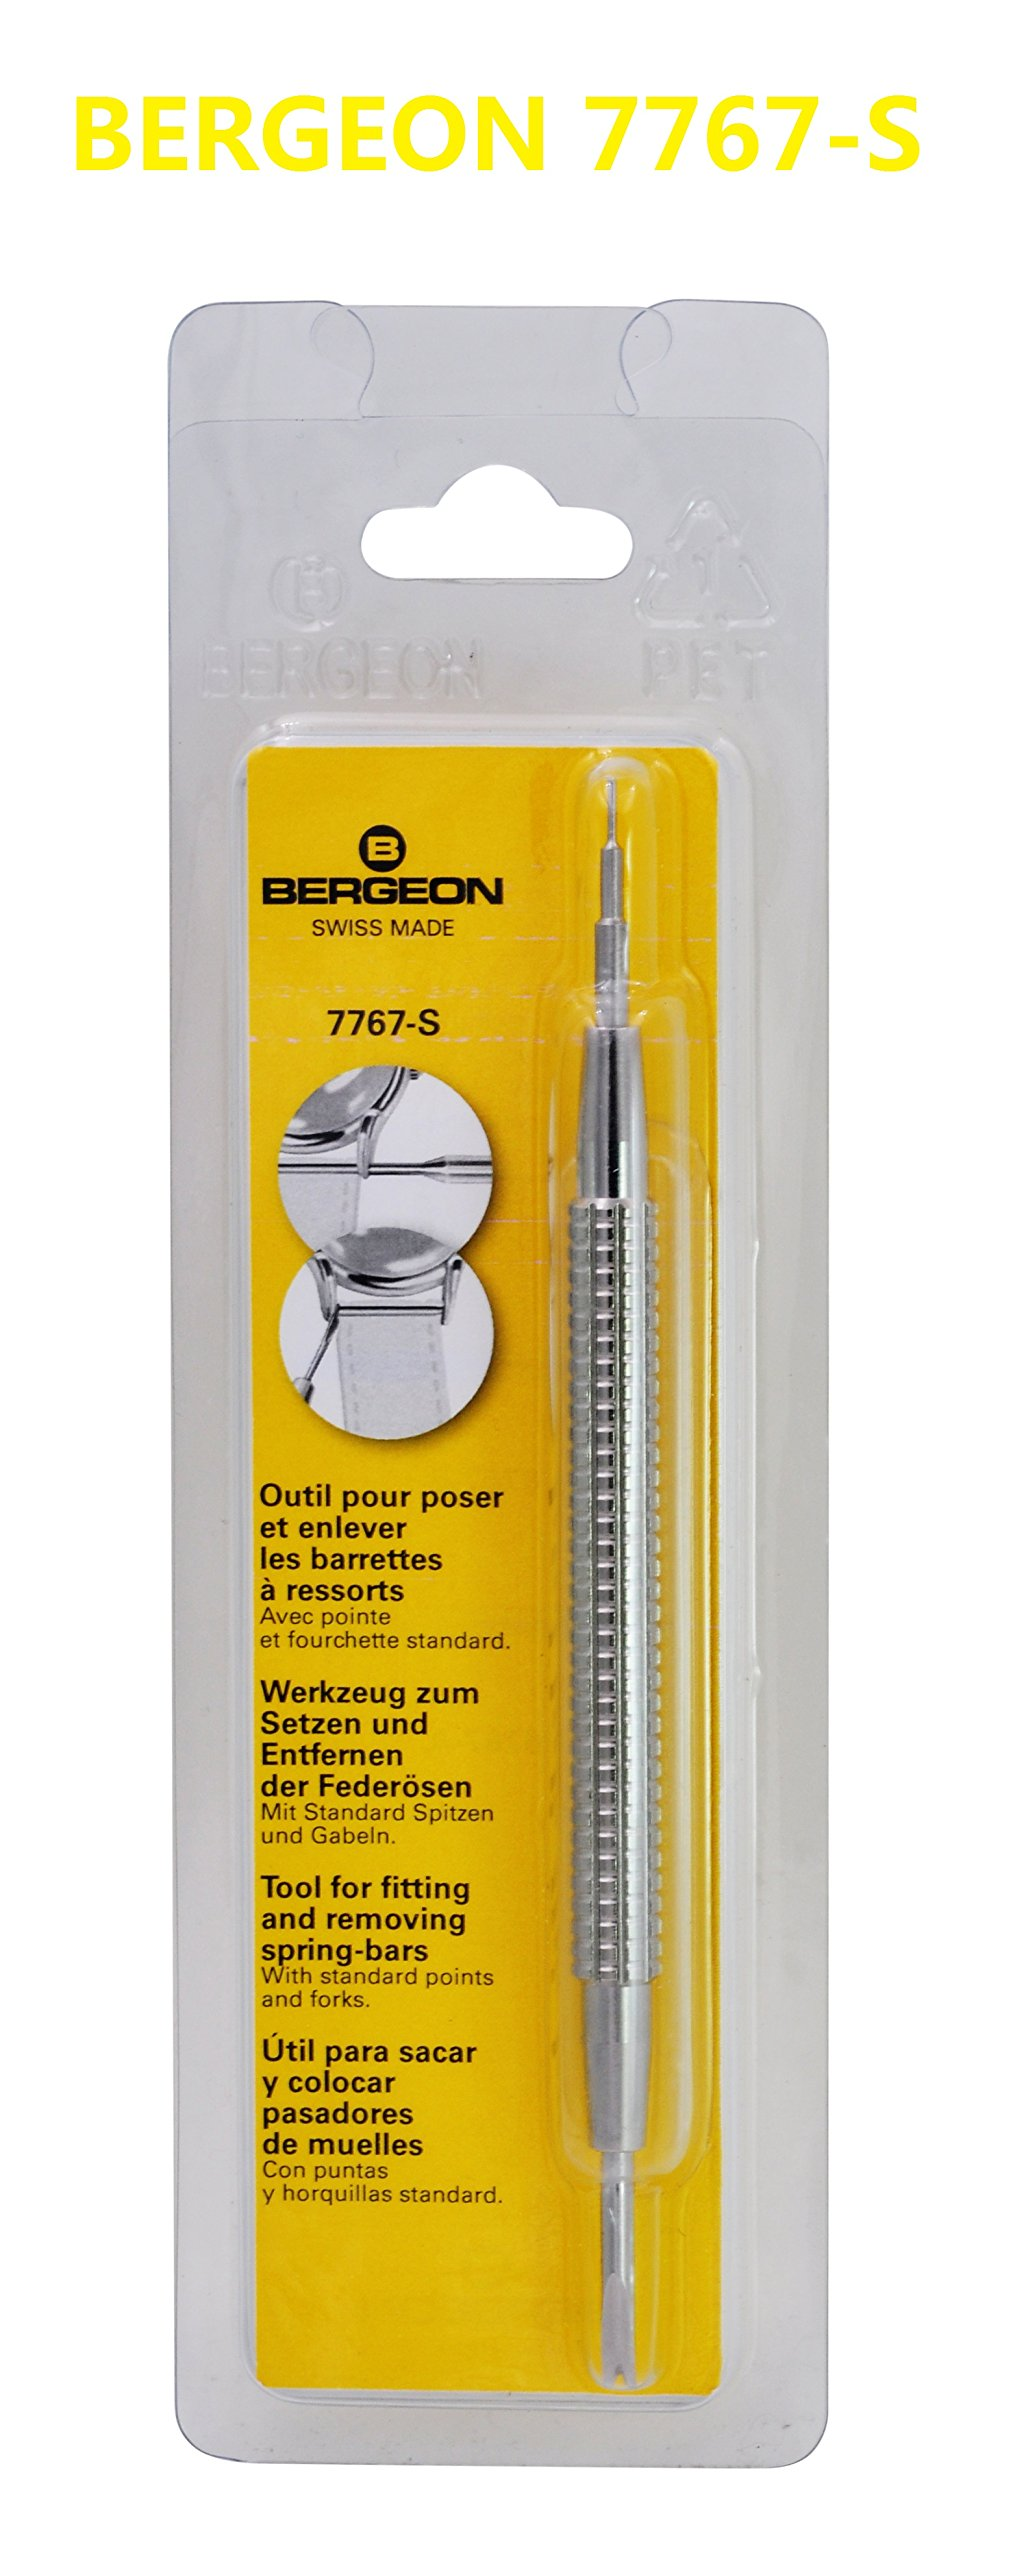 Bergeon 7767-S Watch Spring Bar Tool - Long Stainless Steel Handle with Replaceable Screw In Fine Strong Tool End